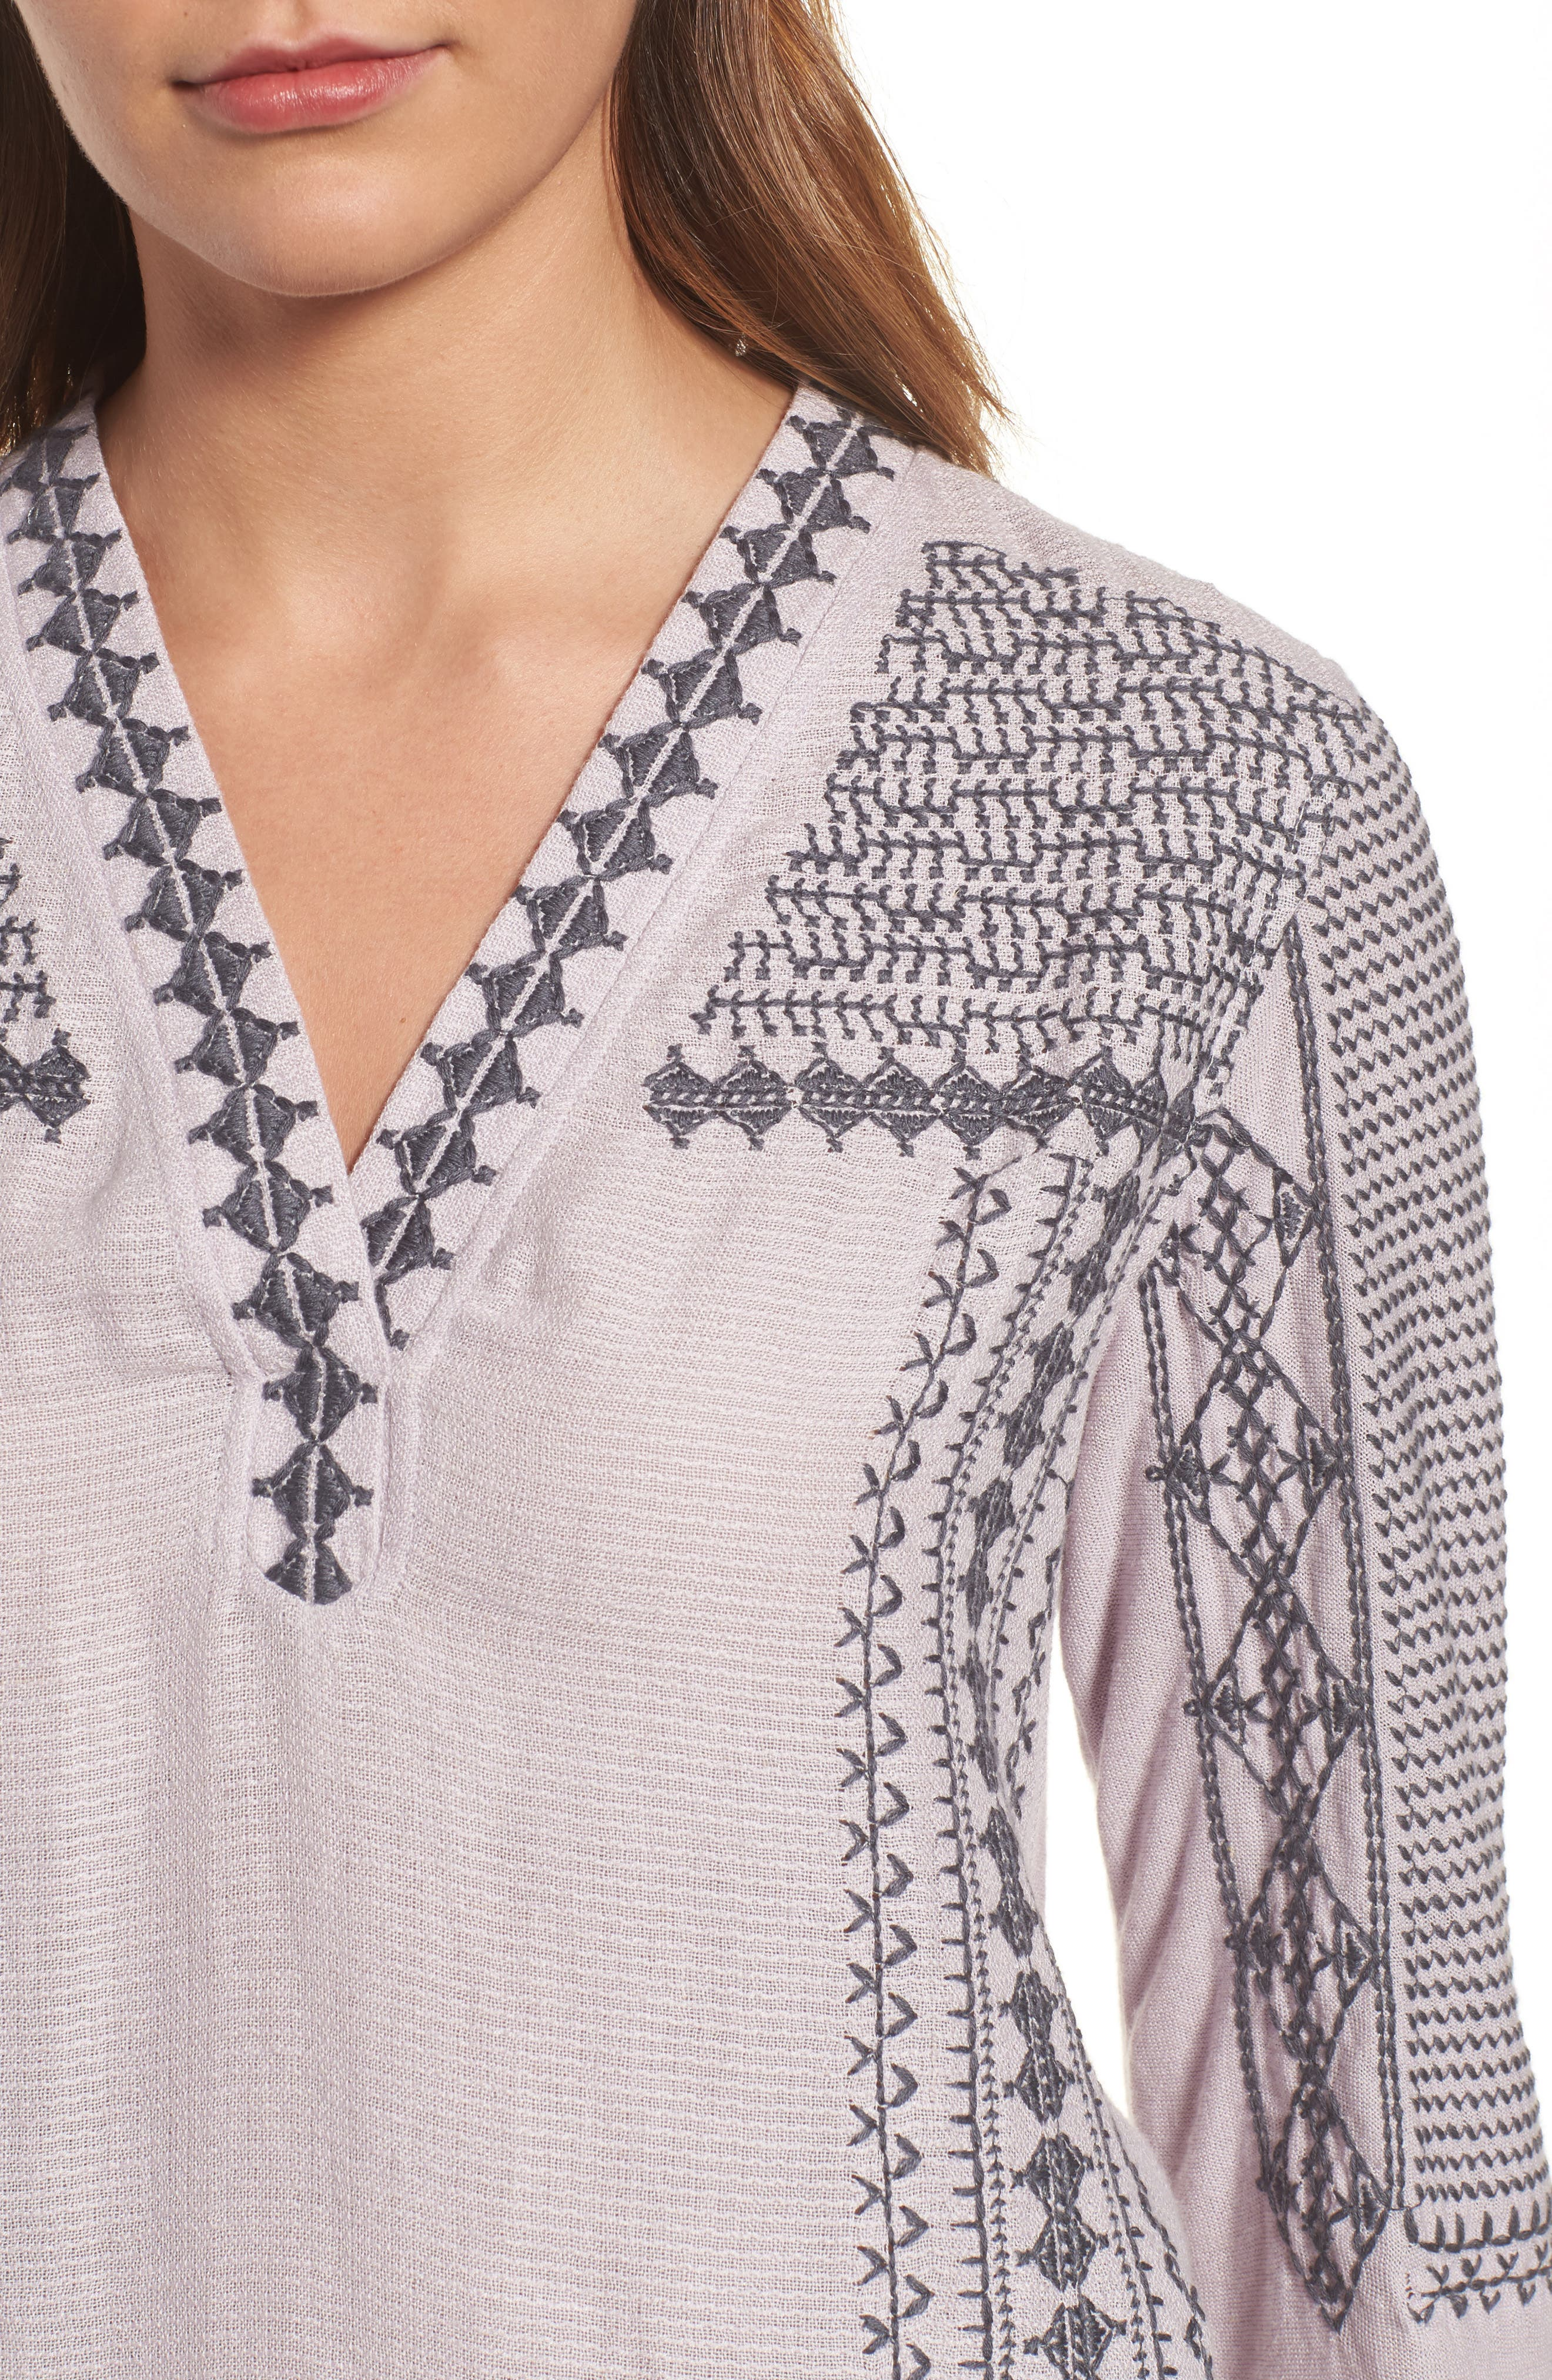 Tangier Top,                             Alternate thumbnail 4, color,                             590